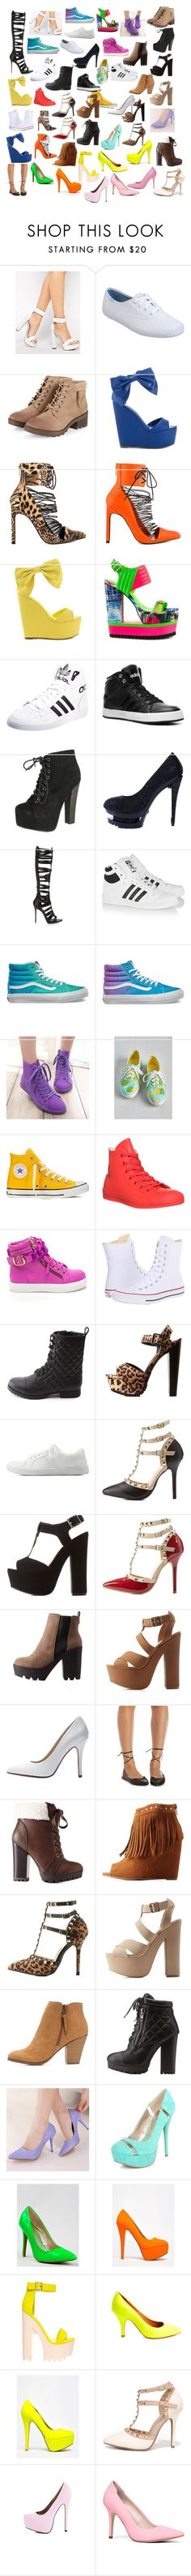 """Shoes #8"" by deamer ❤ liked on Polyvore featuring Windsor Smith, Keds, Privileged, adidas Originals, adidas, Breckelle's, Posh Girl, Vans, Wello and Converse"